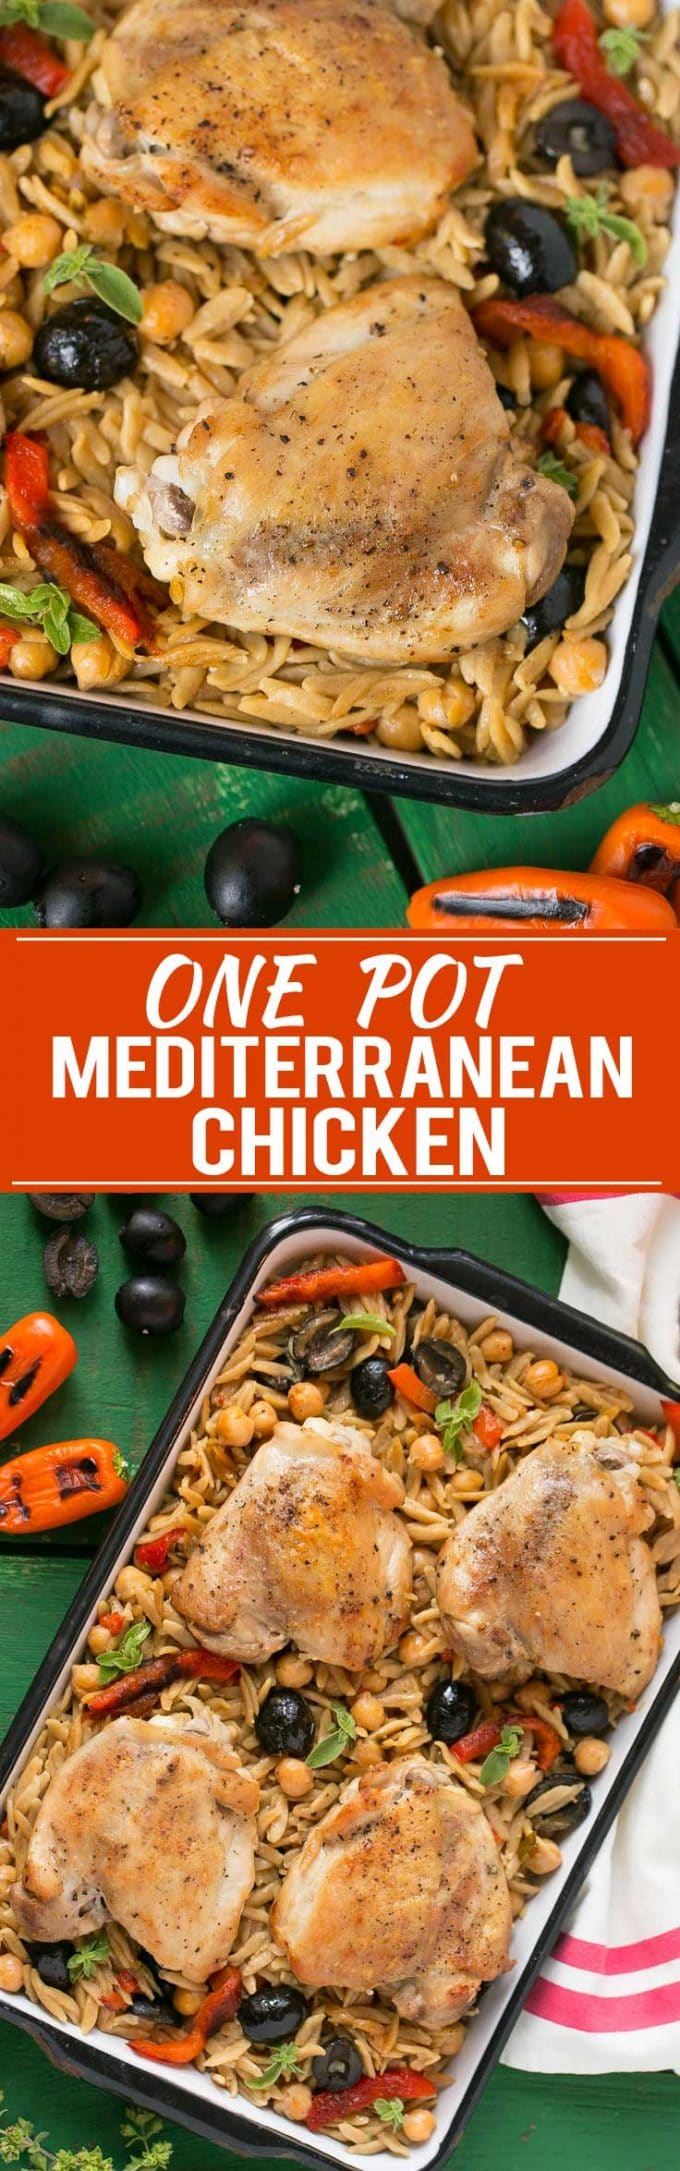 This Mediterranean Chicken with Olives and Orzo is a healthy meal that's made in just one pot. Ad